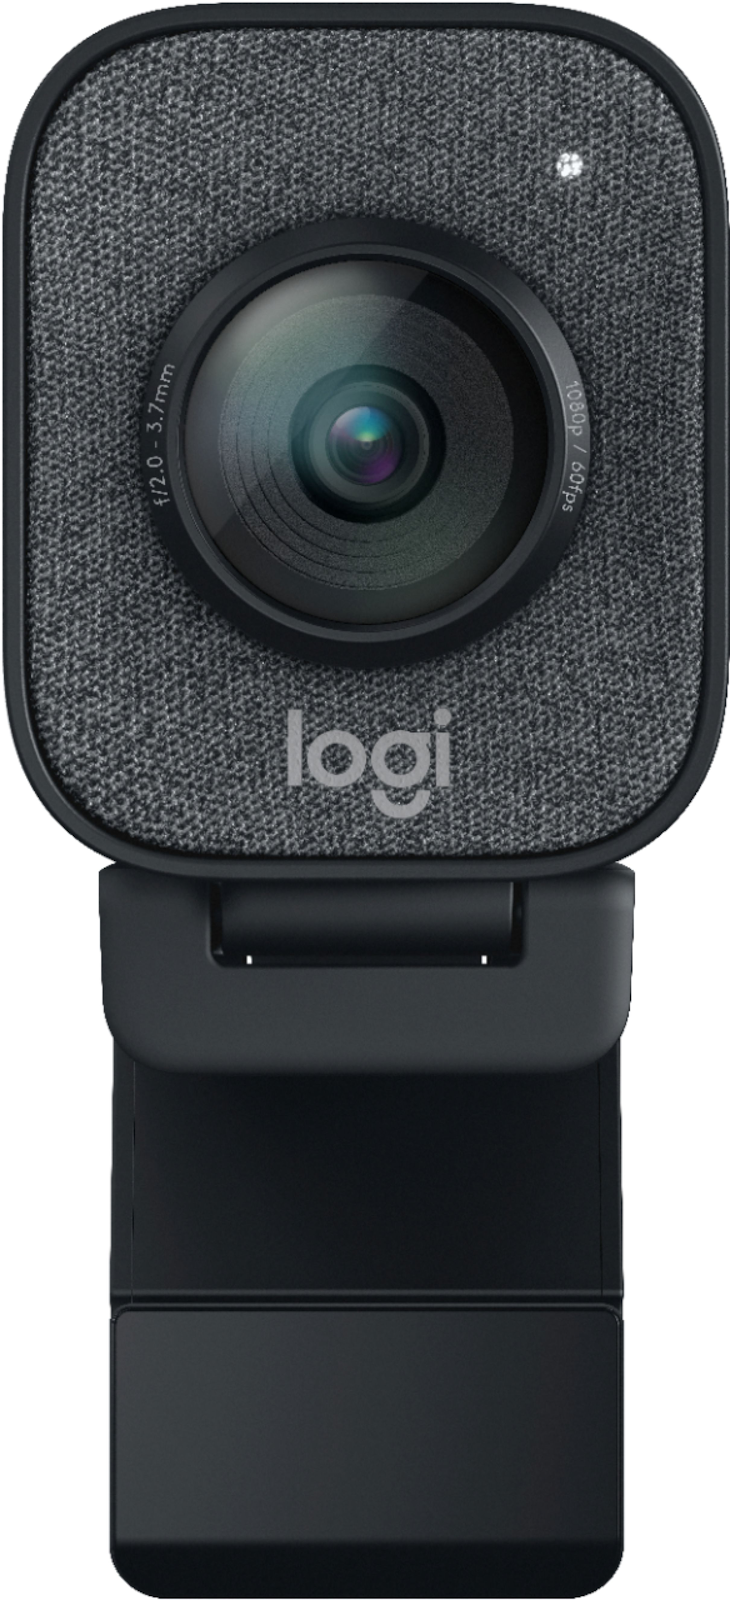 The Logitech StreamCam